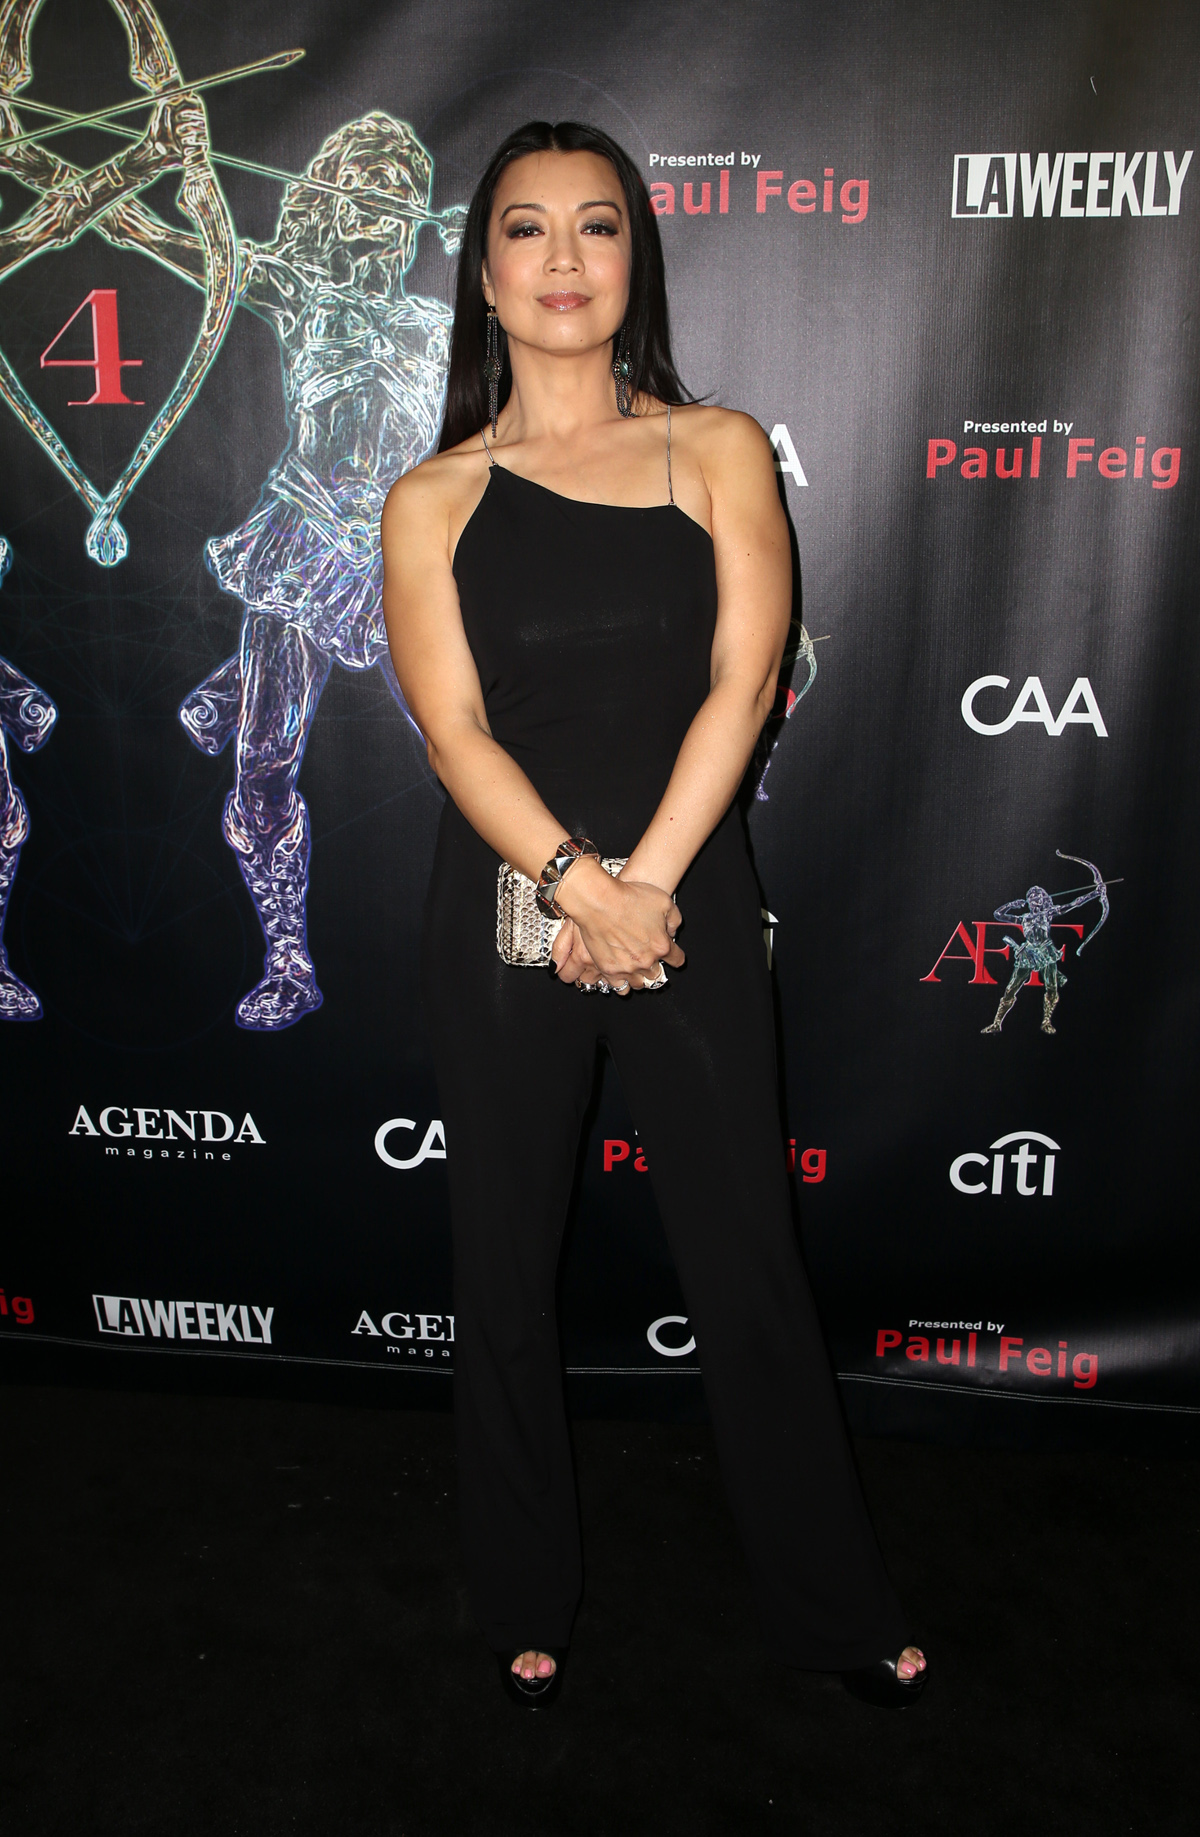 BEVERLY HILLS, CA - APRIL 26: Ming-Na Wen, at the 2018 Artemis Awards Gala at the Ahrya Fine Arts Theater in Beverly Hills, California on April 26, 2018. Credit: Faye Sadou/MediaPunch